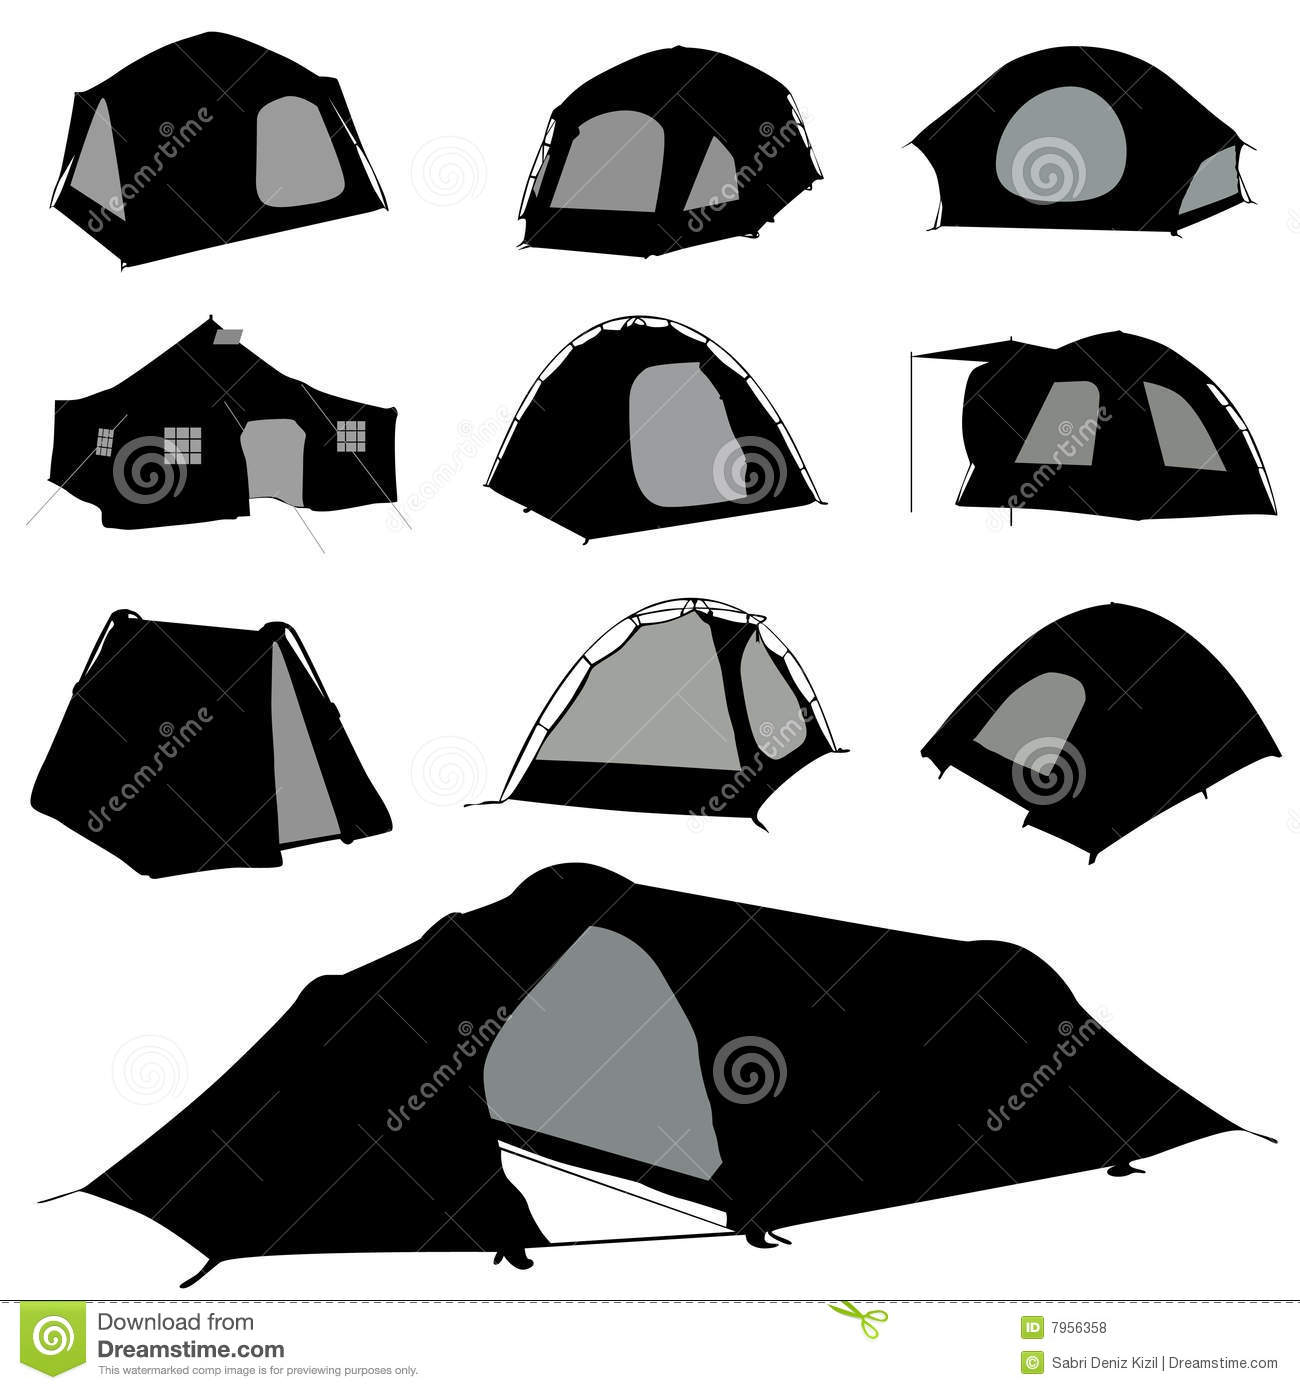 Camping Silhouette Clipart - Clipart Suggest